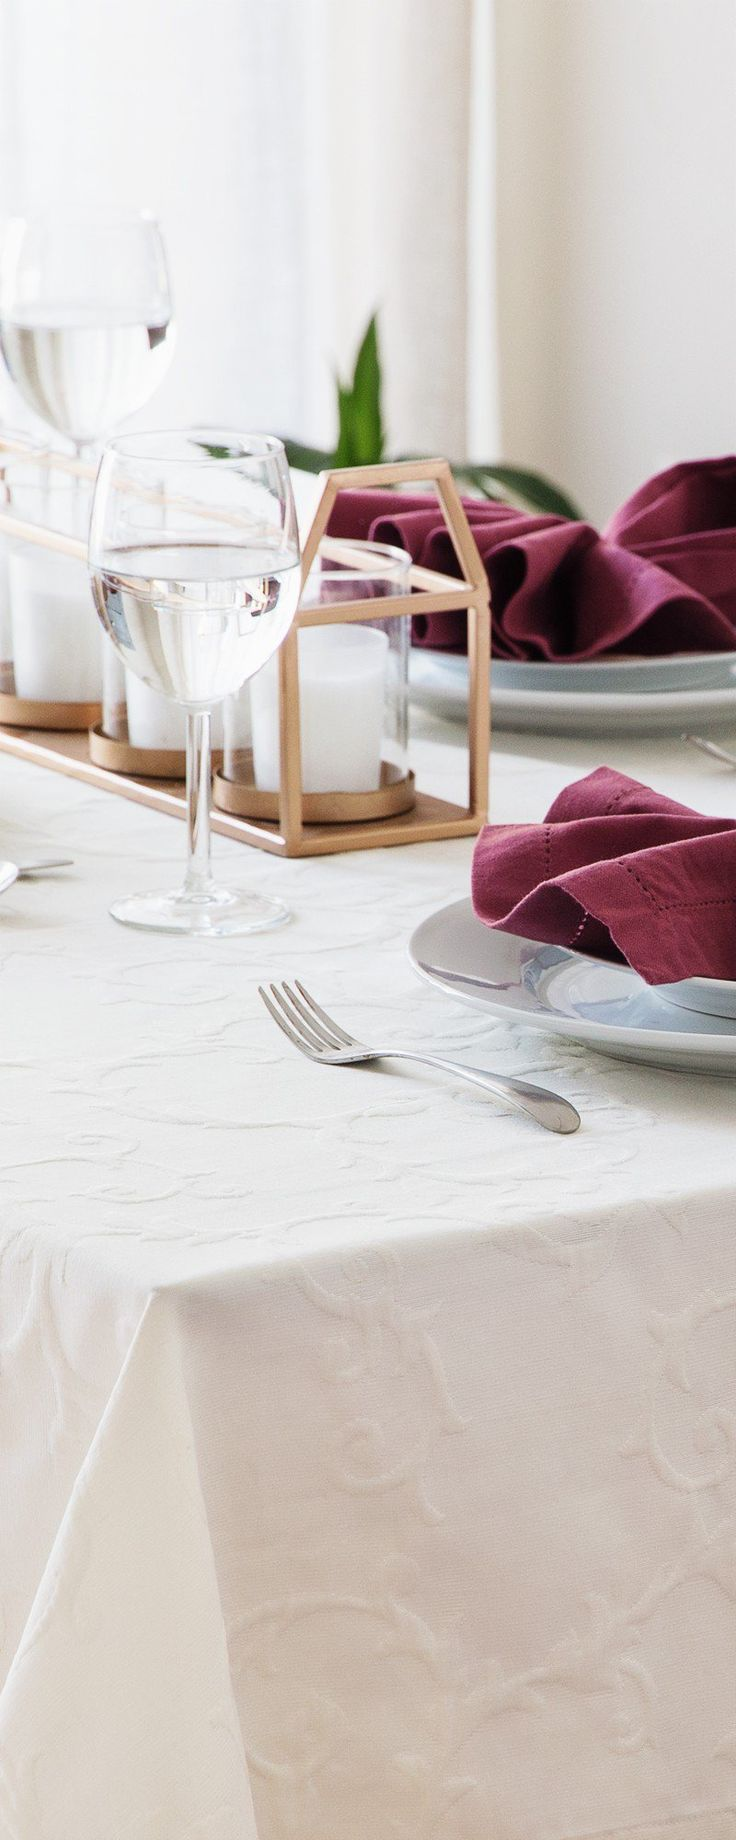 Mode Living- Stain-Resistant Tablecloths - Dress your table in luxury linen that's resistant to stains. Its fluorocarbon finish repels wine, oil and more—so they won't set in.